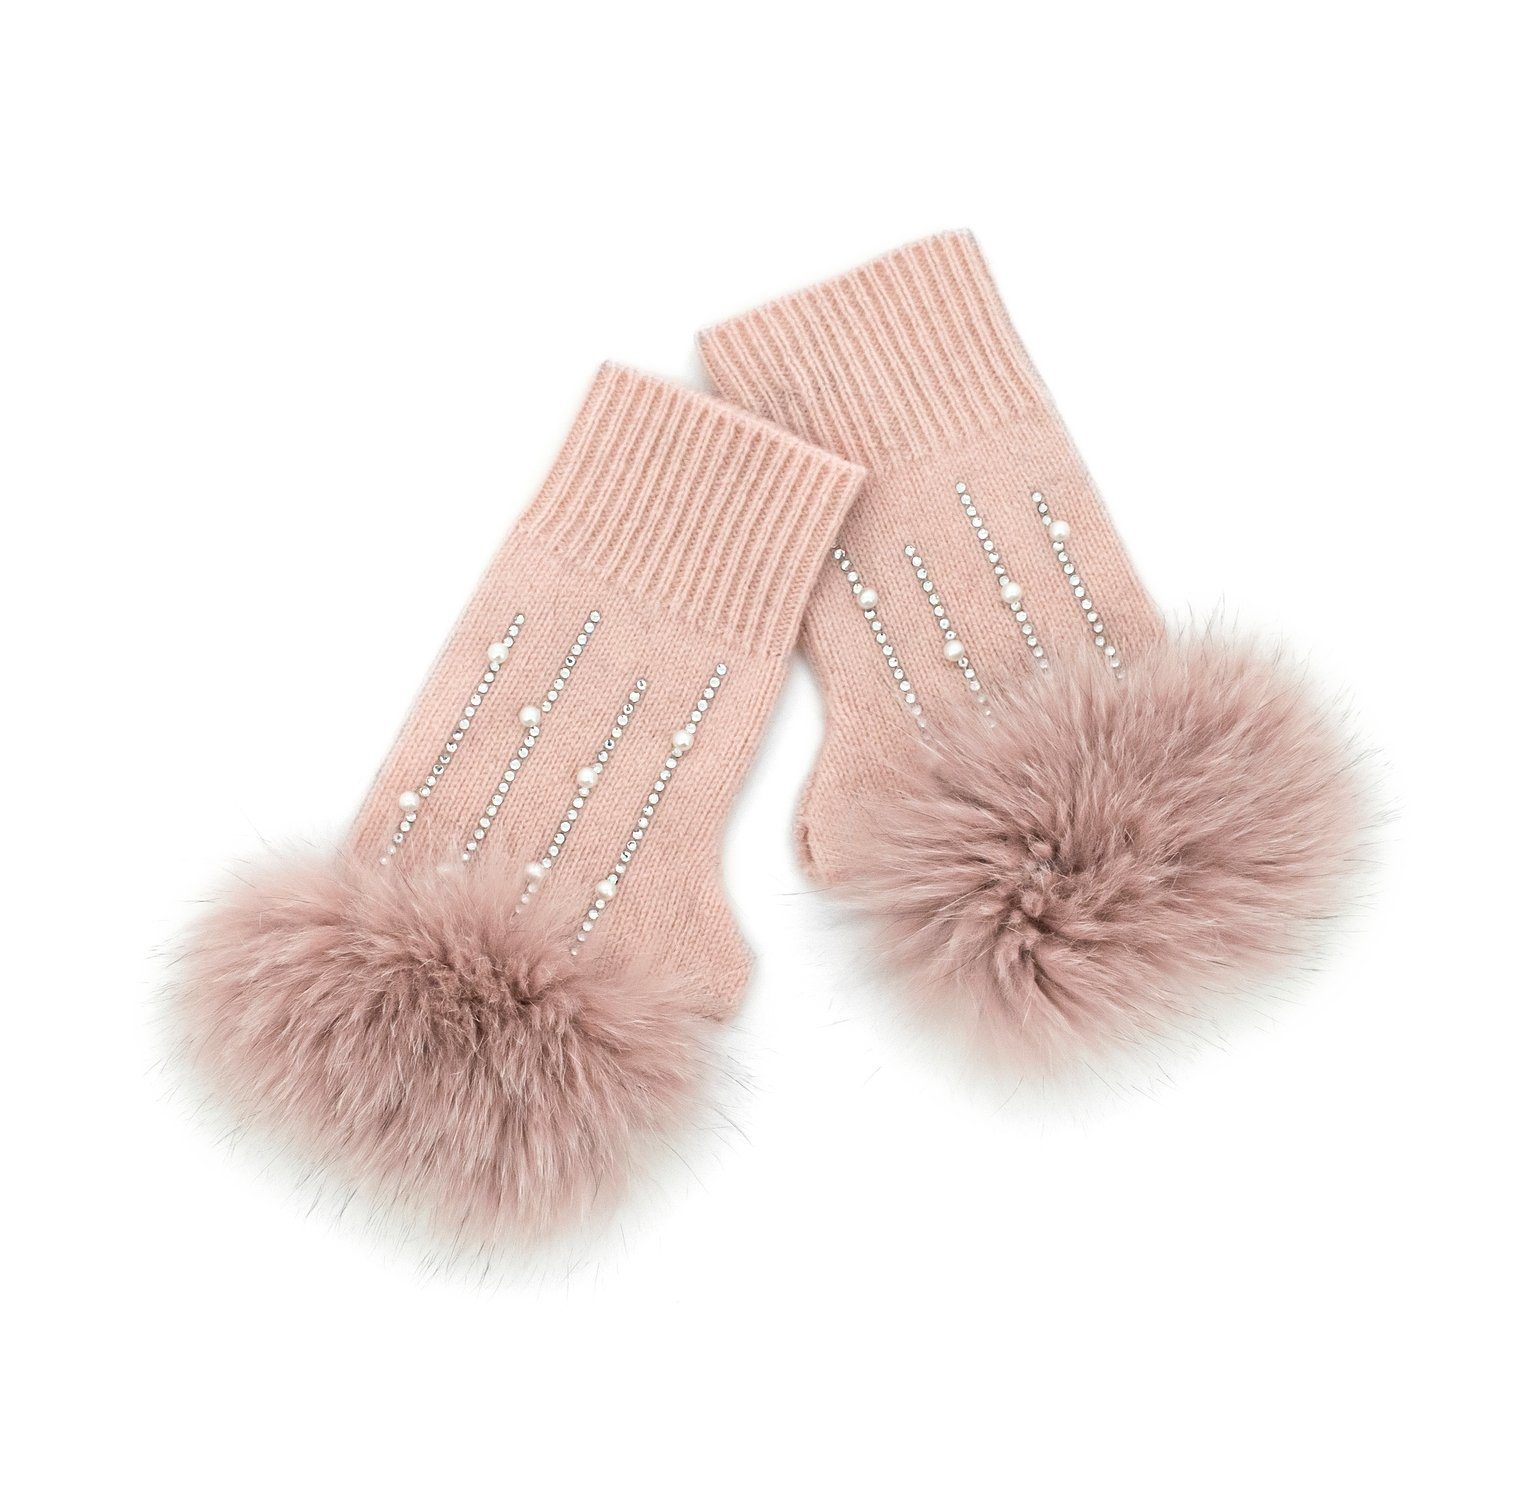 Soft Pink Knitted Fingerless Gloves w/ Crystals & Fox Trim